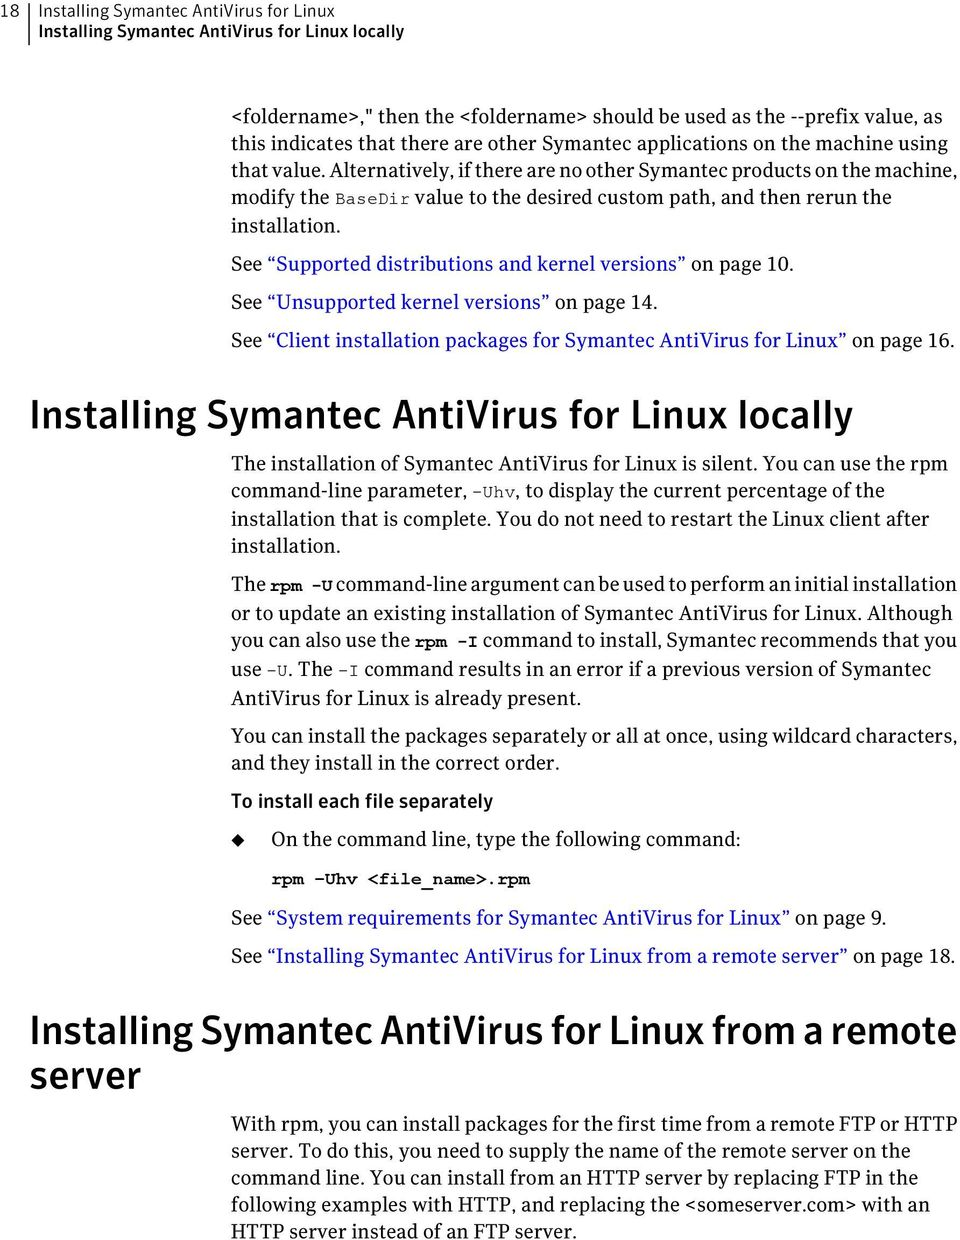 Symantec AntiVirus for Linux Implementation Guide - PDF